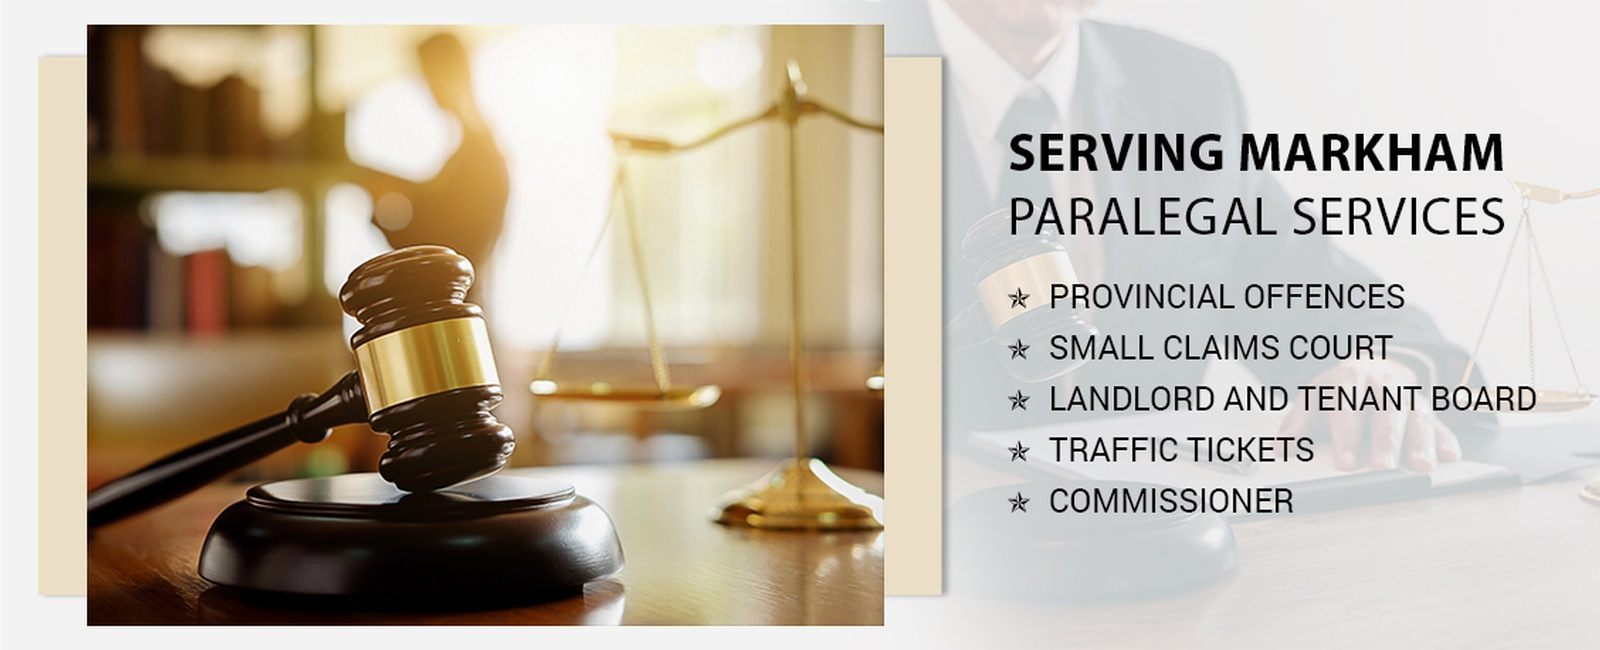 Paralegal services in Markham